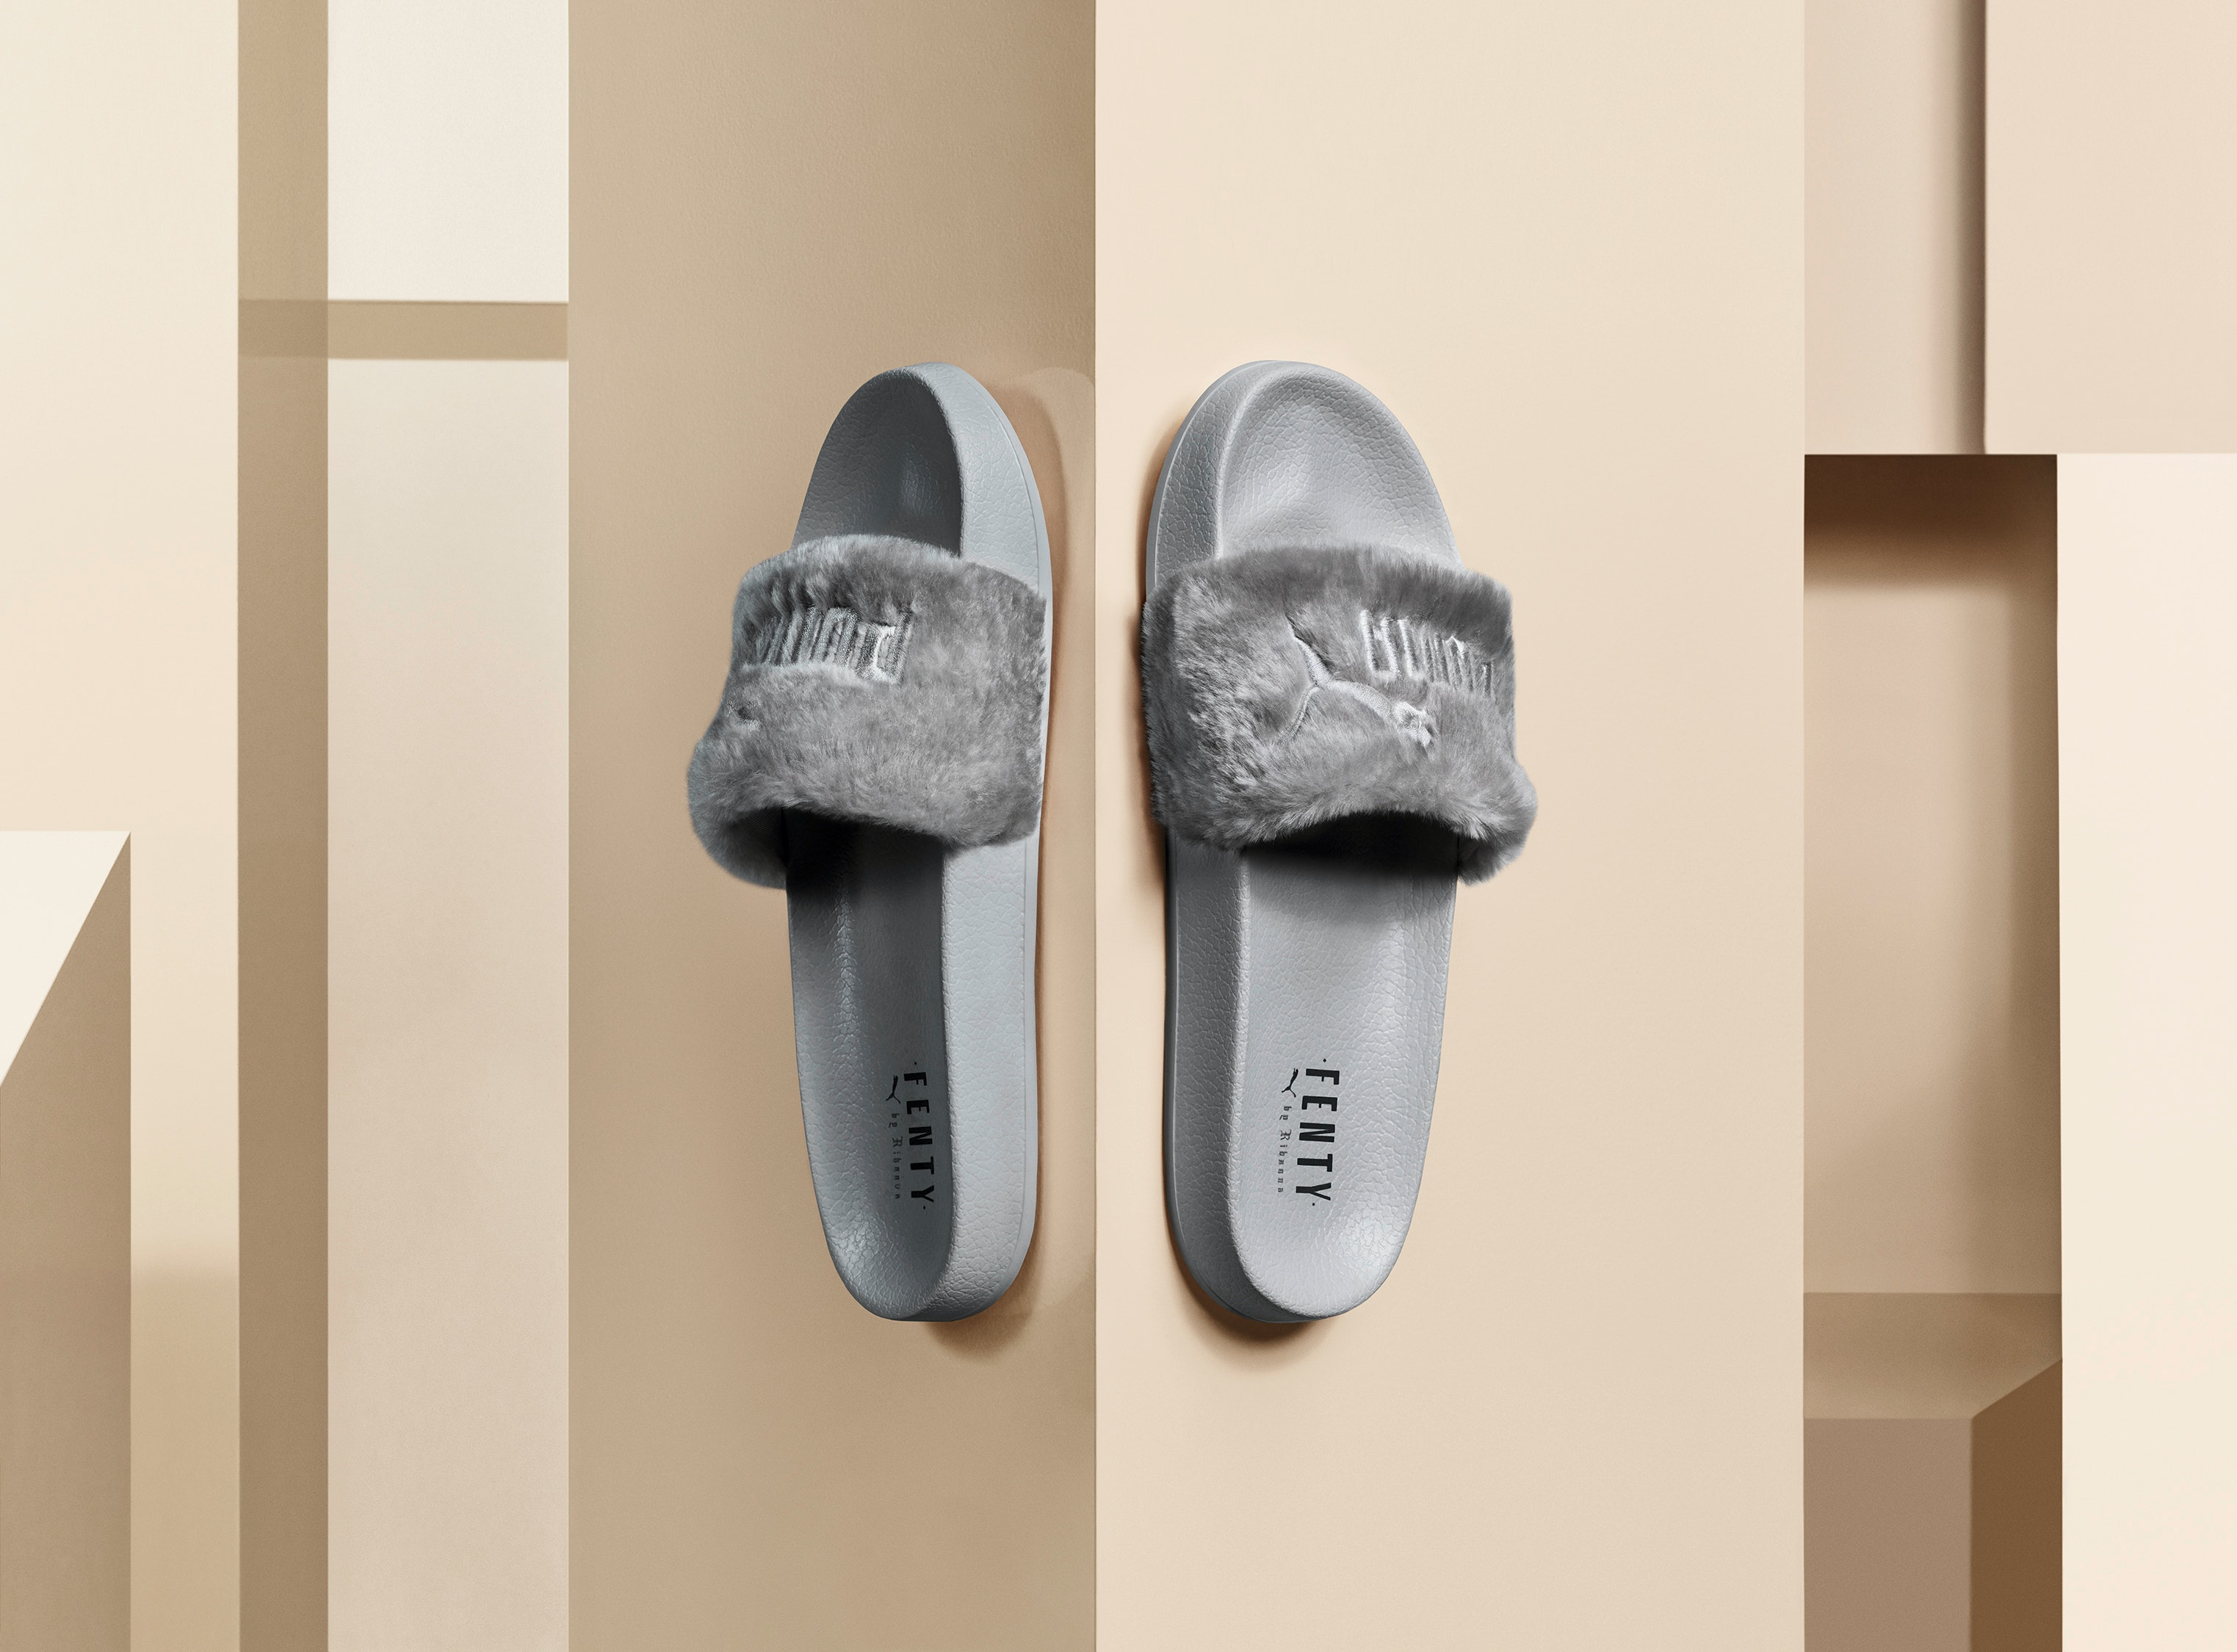 puma rihanna slides price